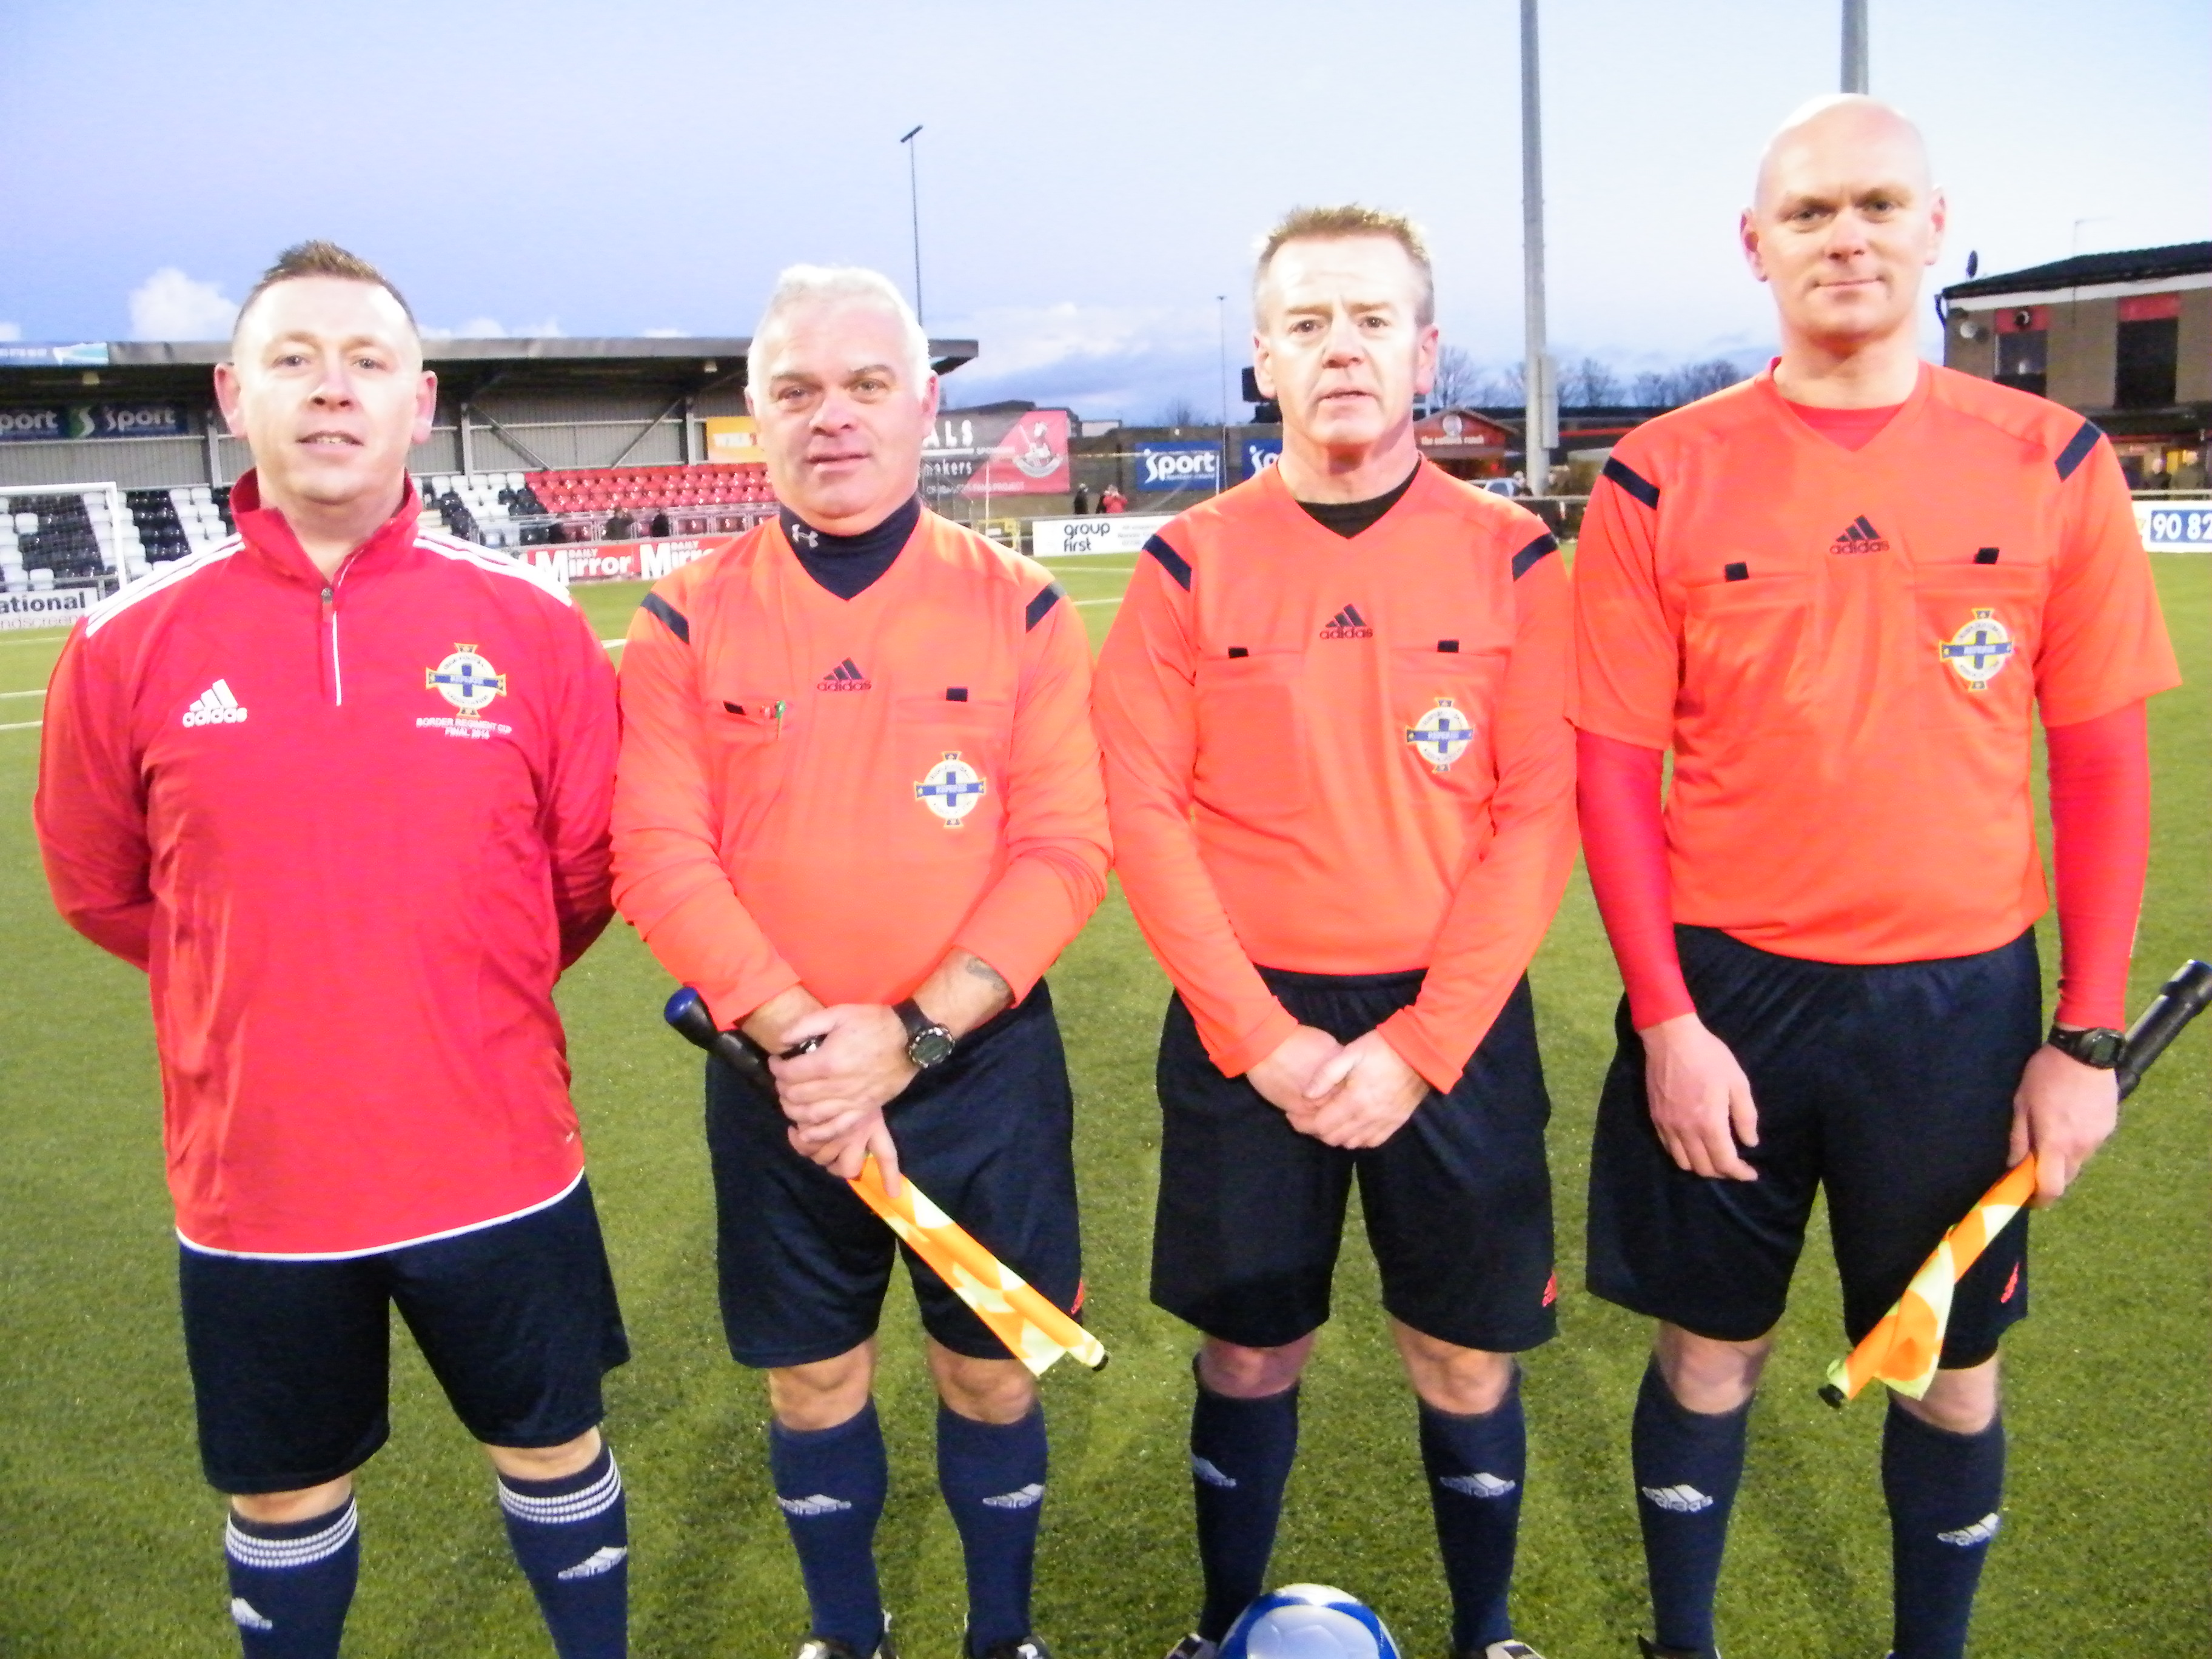 Match officials Referee Trevor Moutray with his assistants Iain Banks,Tony Clarke and Stephen McDonald